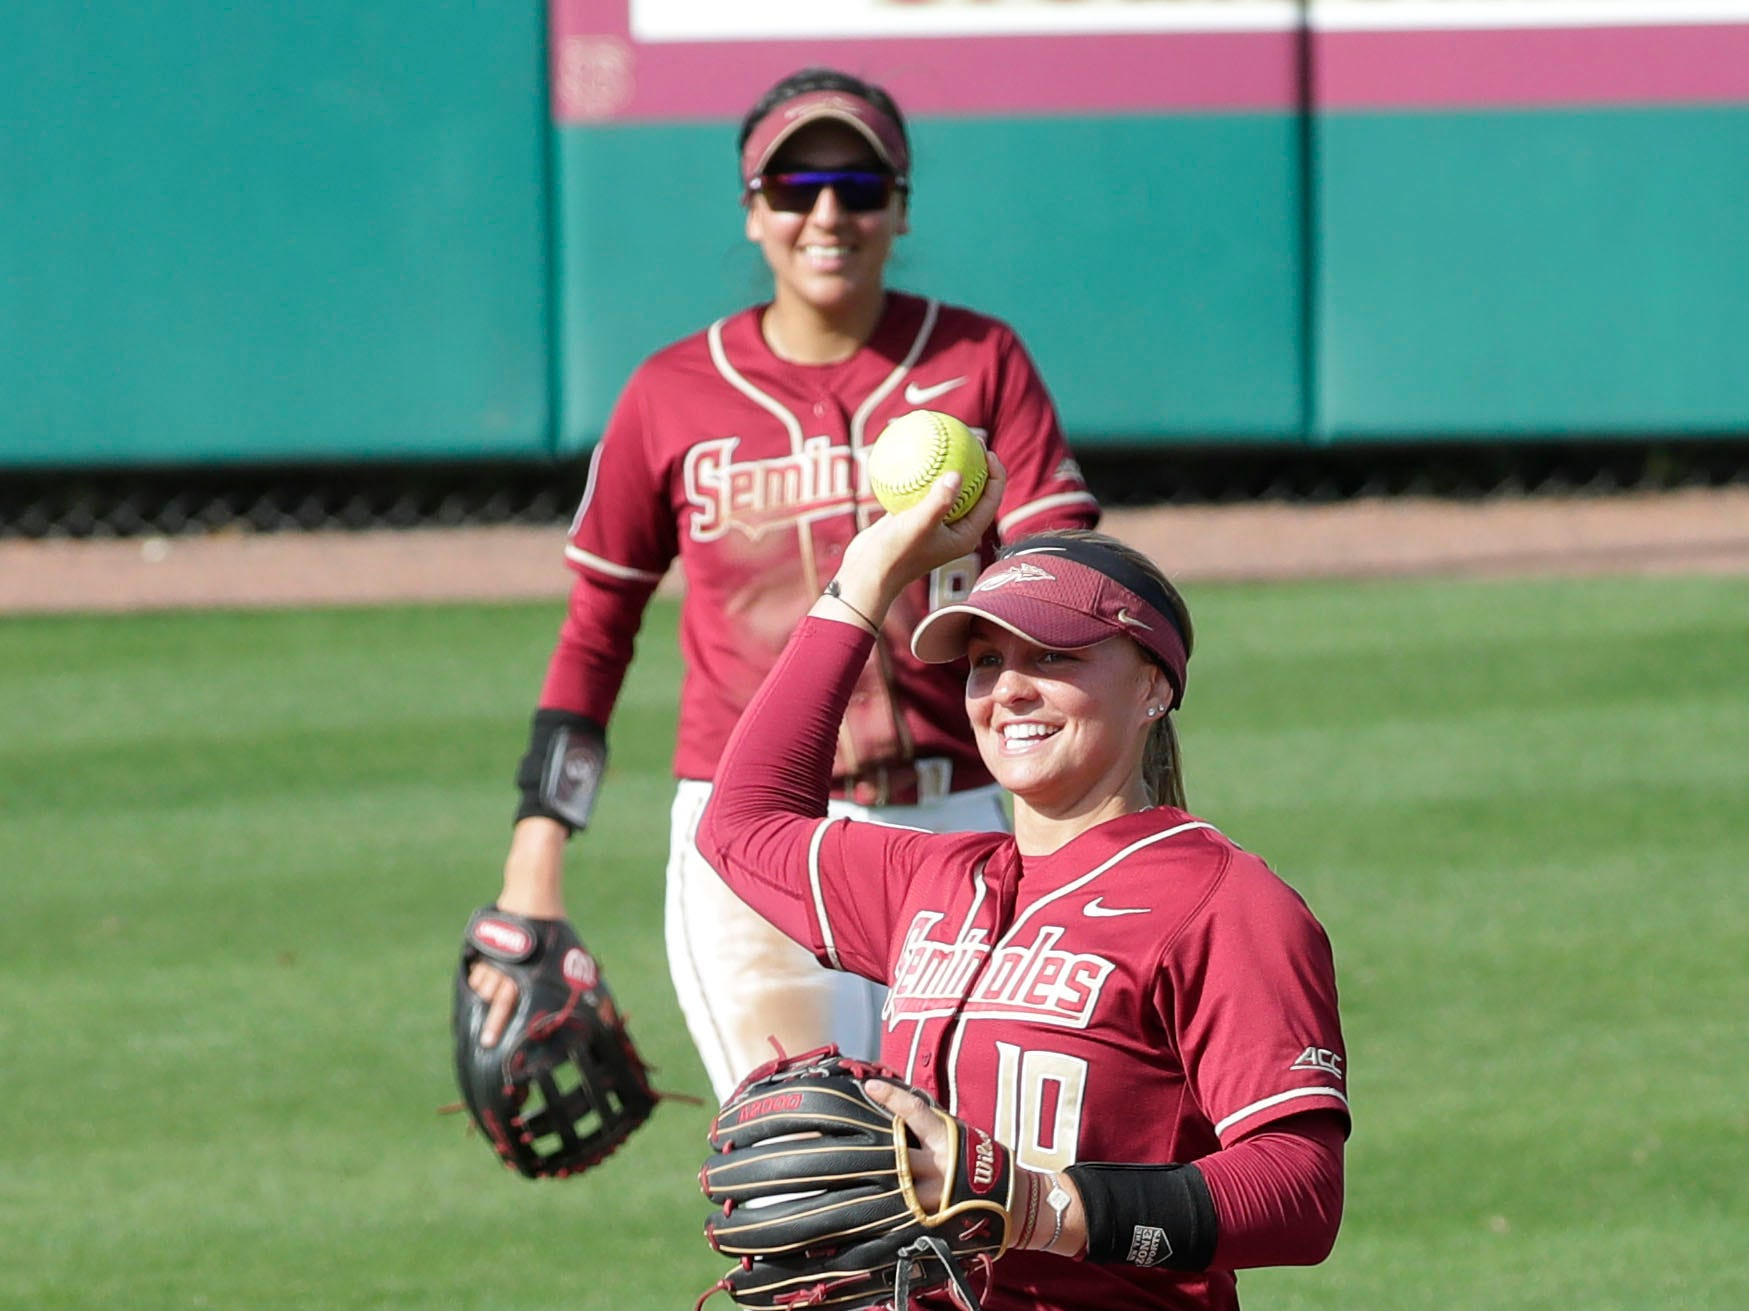 Florida State Seminoles infielder Cali Harrod (10) throws the ball to the pitcher. The Florida State Seminoles host the Elon Phoenixes for the Unconquered Tournament, Friday Feb. 22, 2019.